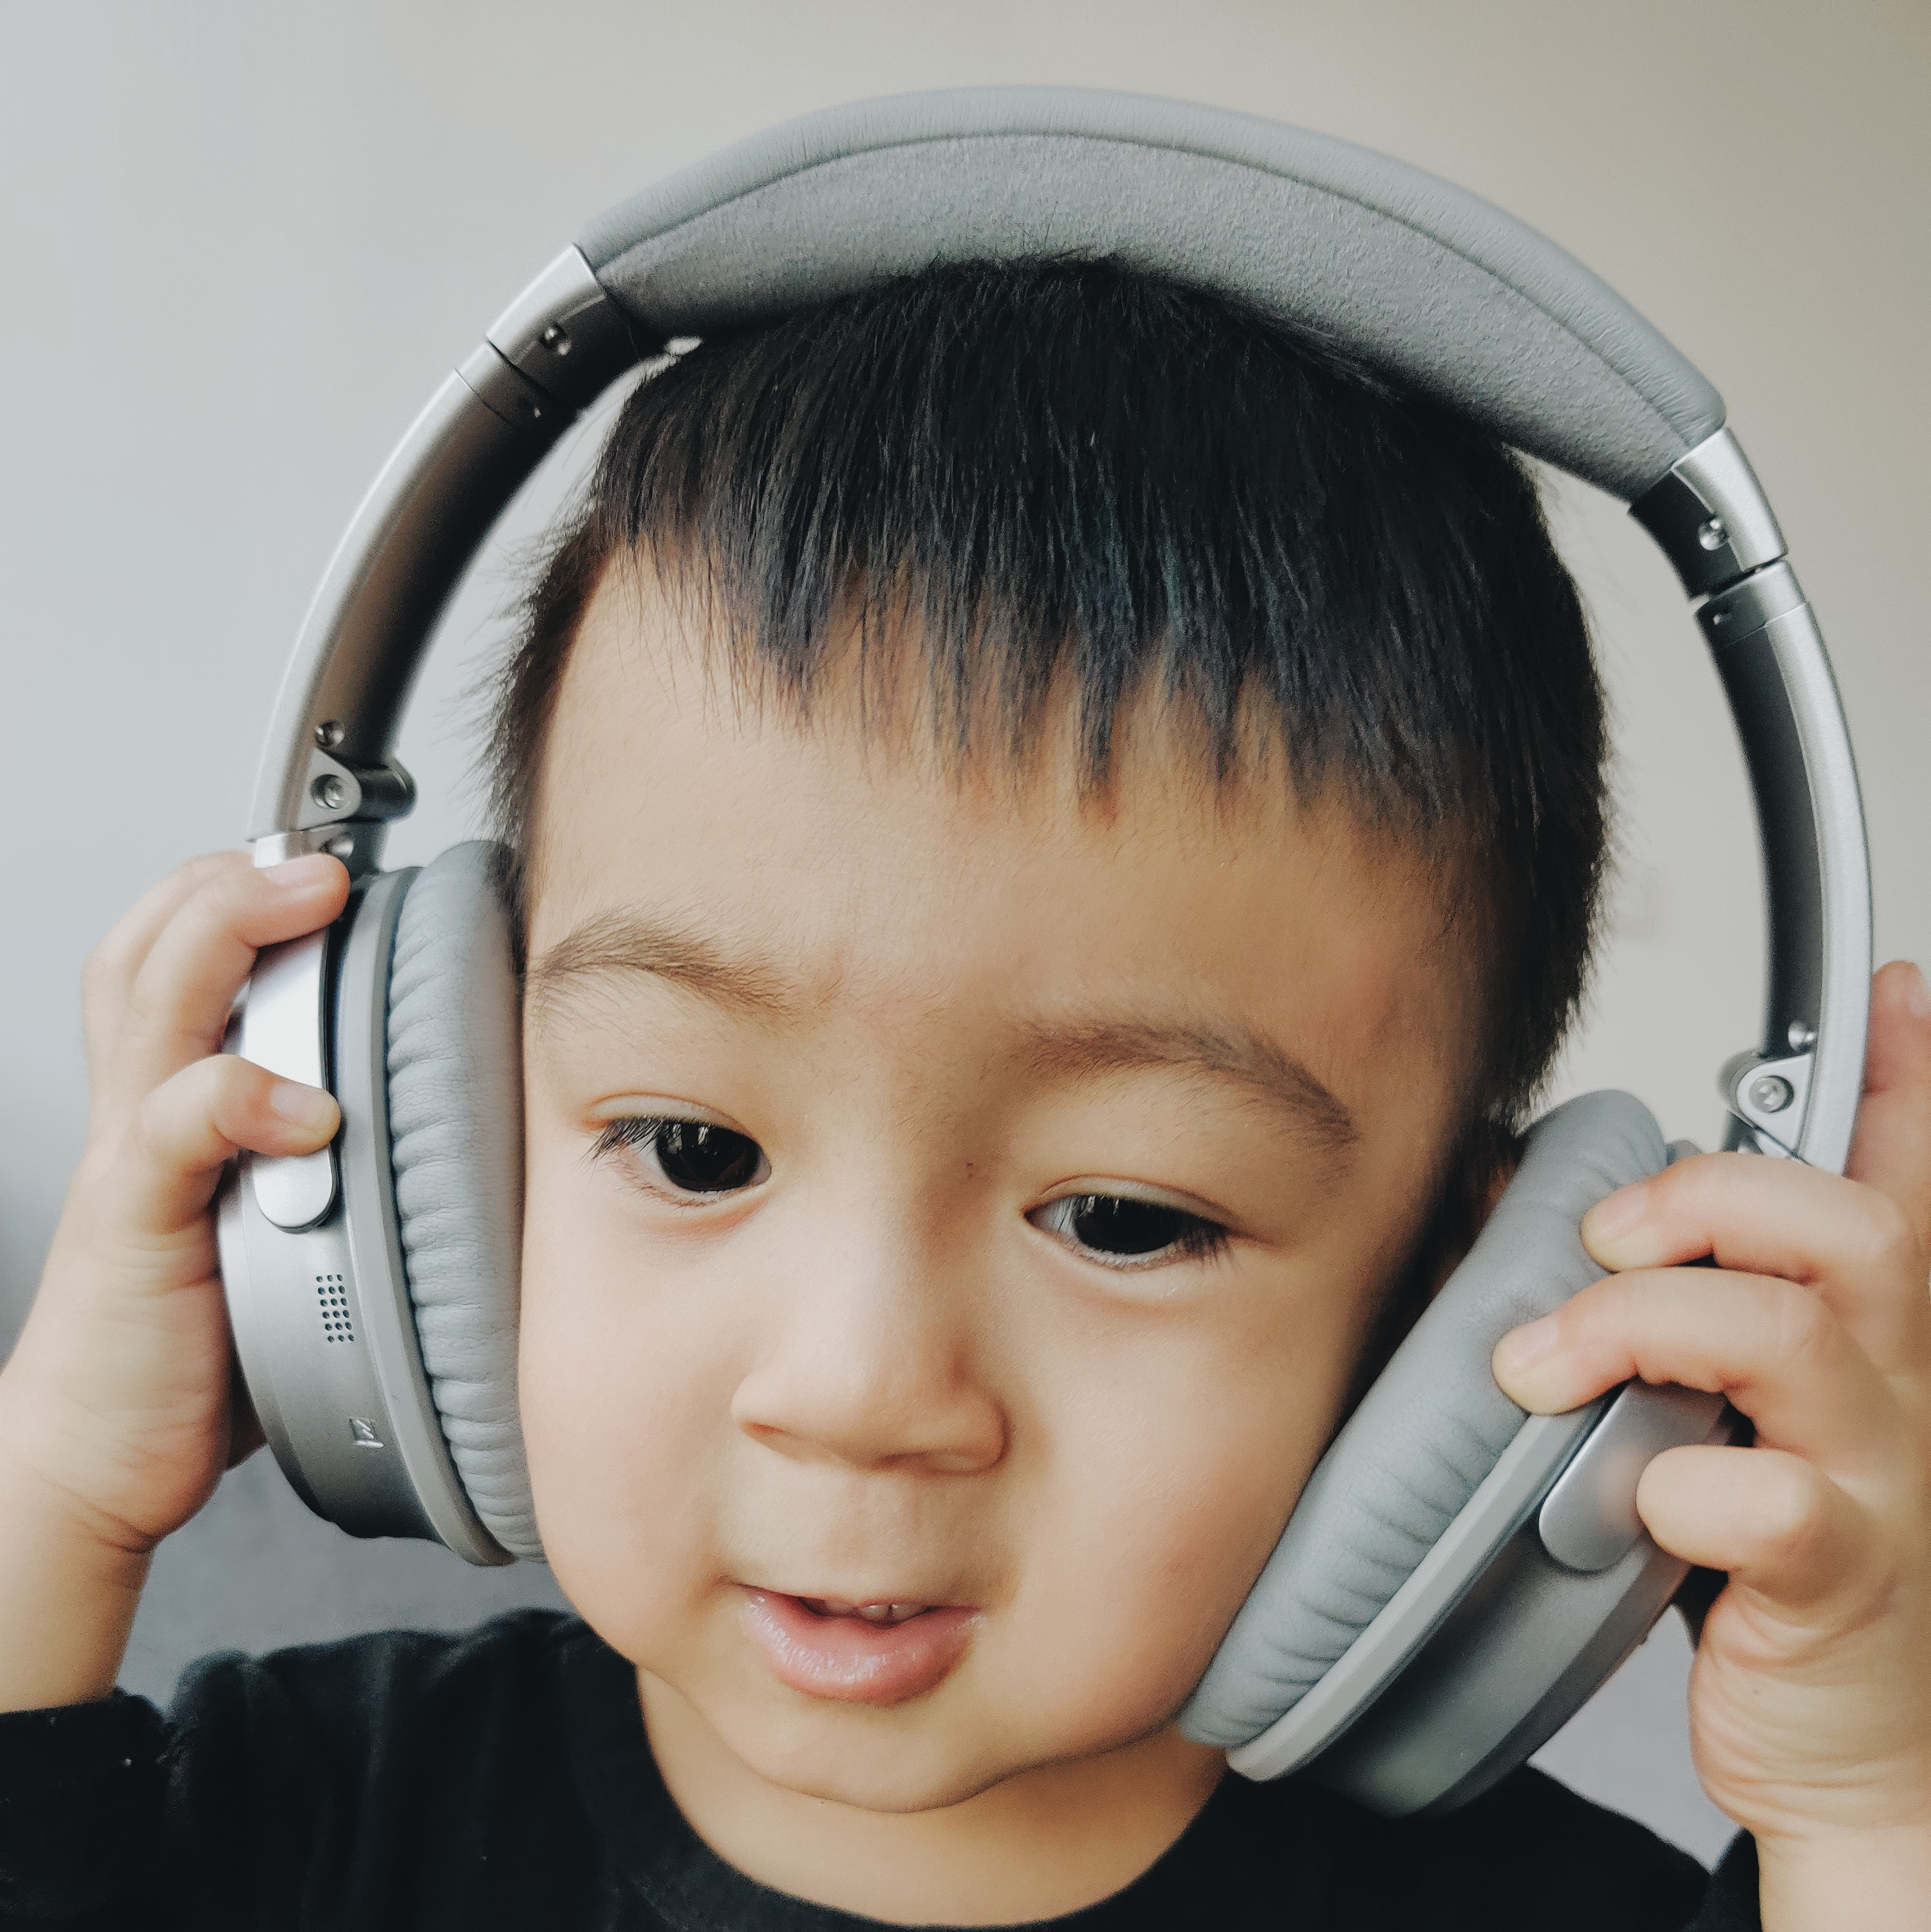 avoiding noise with a headset